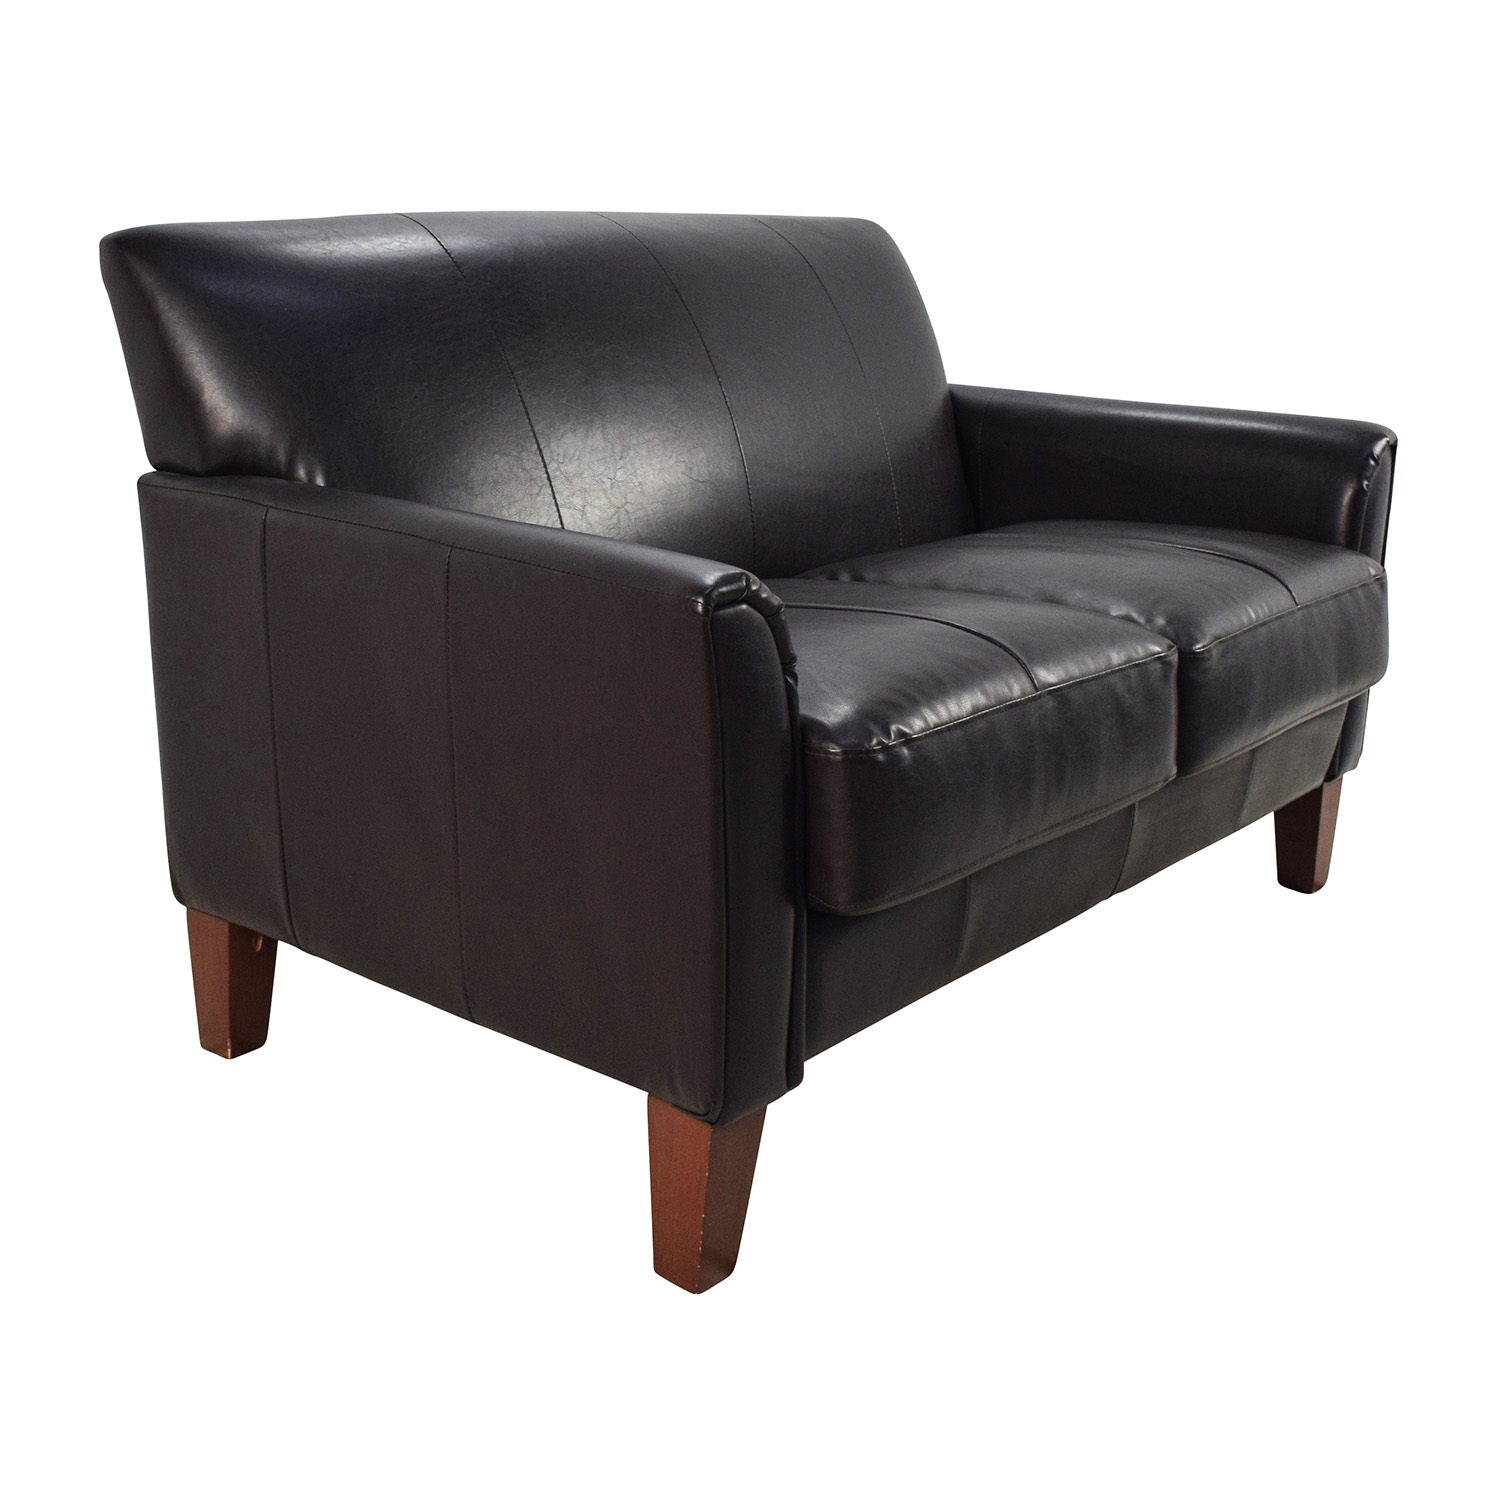 Black Leather Sofa And Loveseat Athens Black Italian Leather Sofa And Loveseat